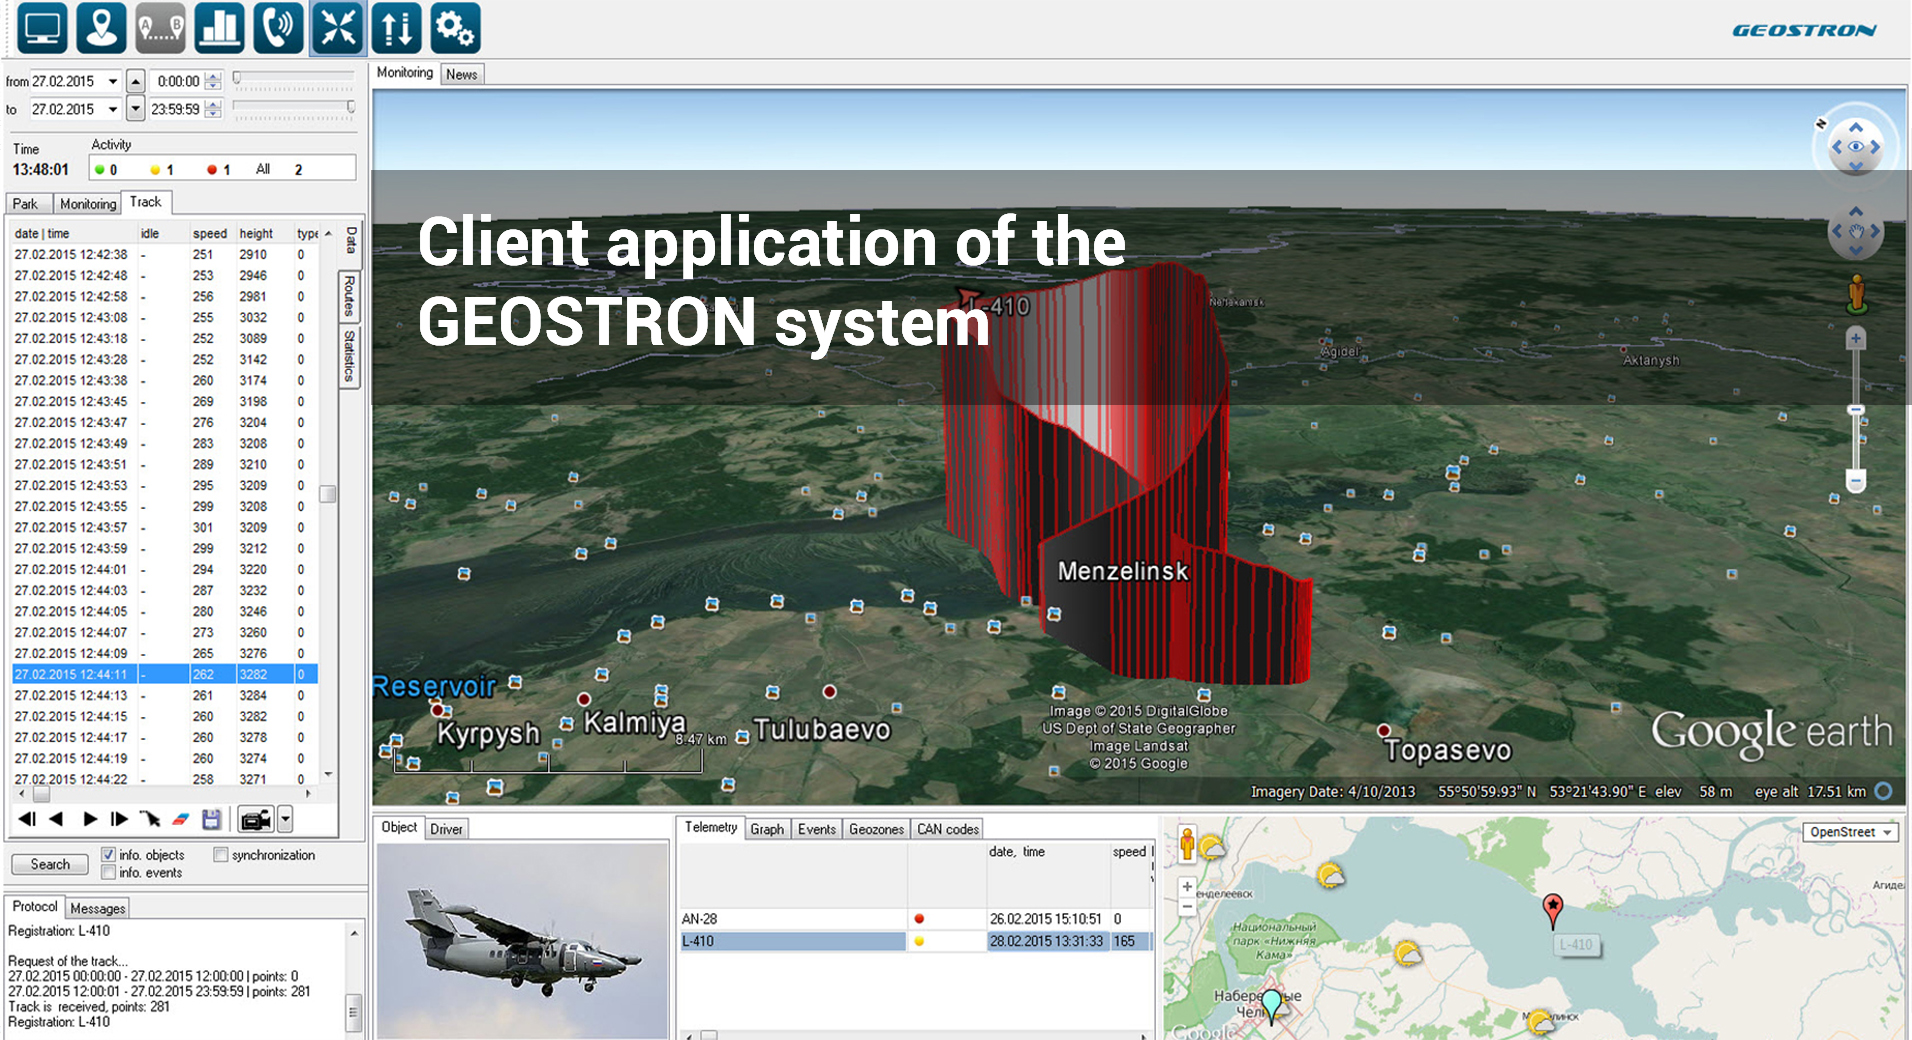 Client application of the GEOSTRON system